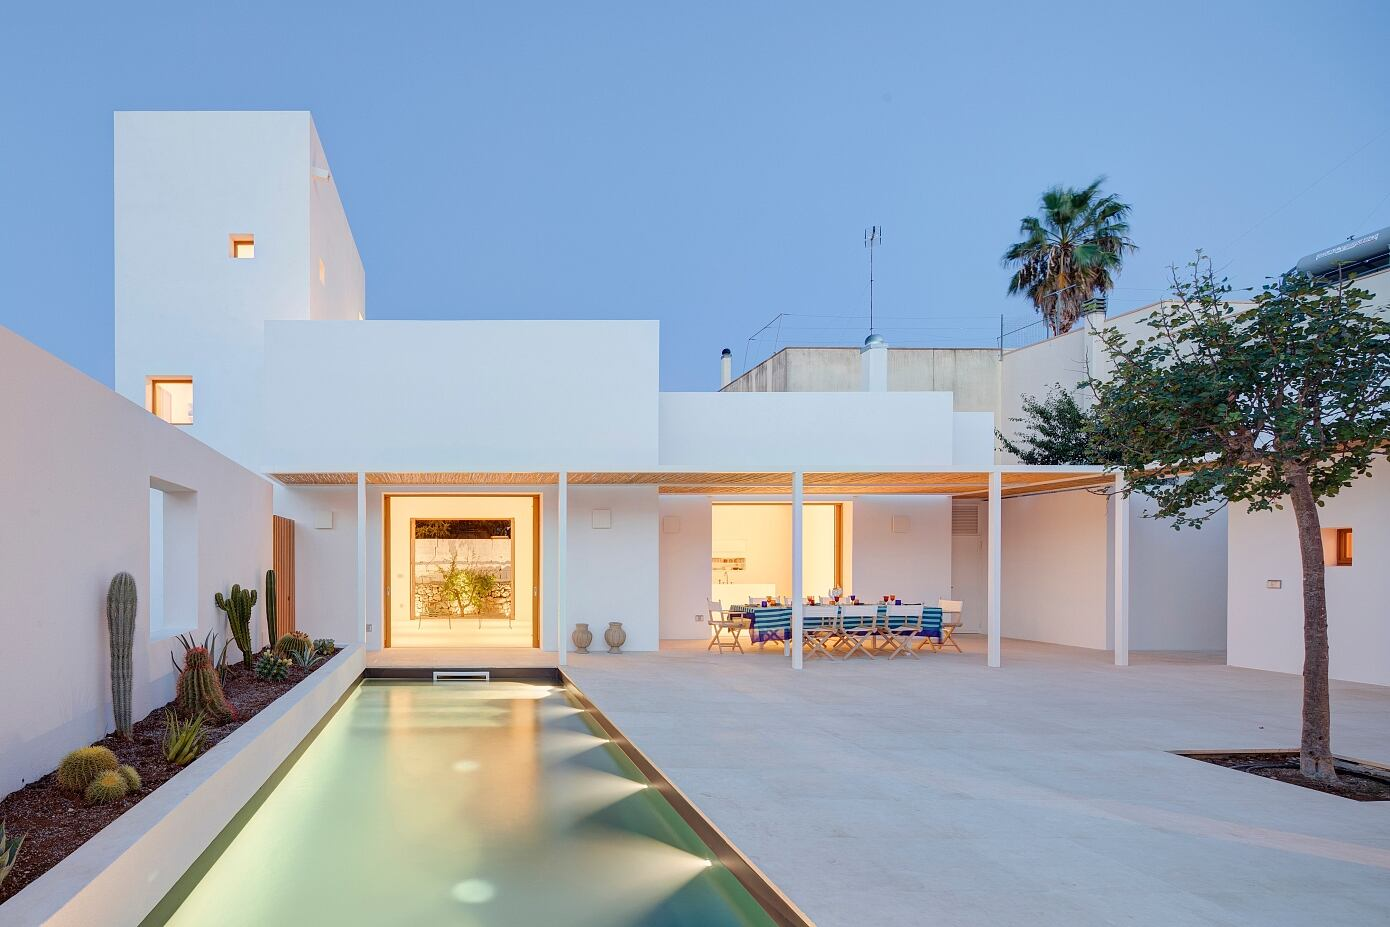 La Torre Bianca by Dosarchitects